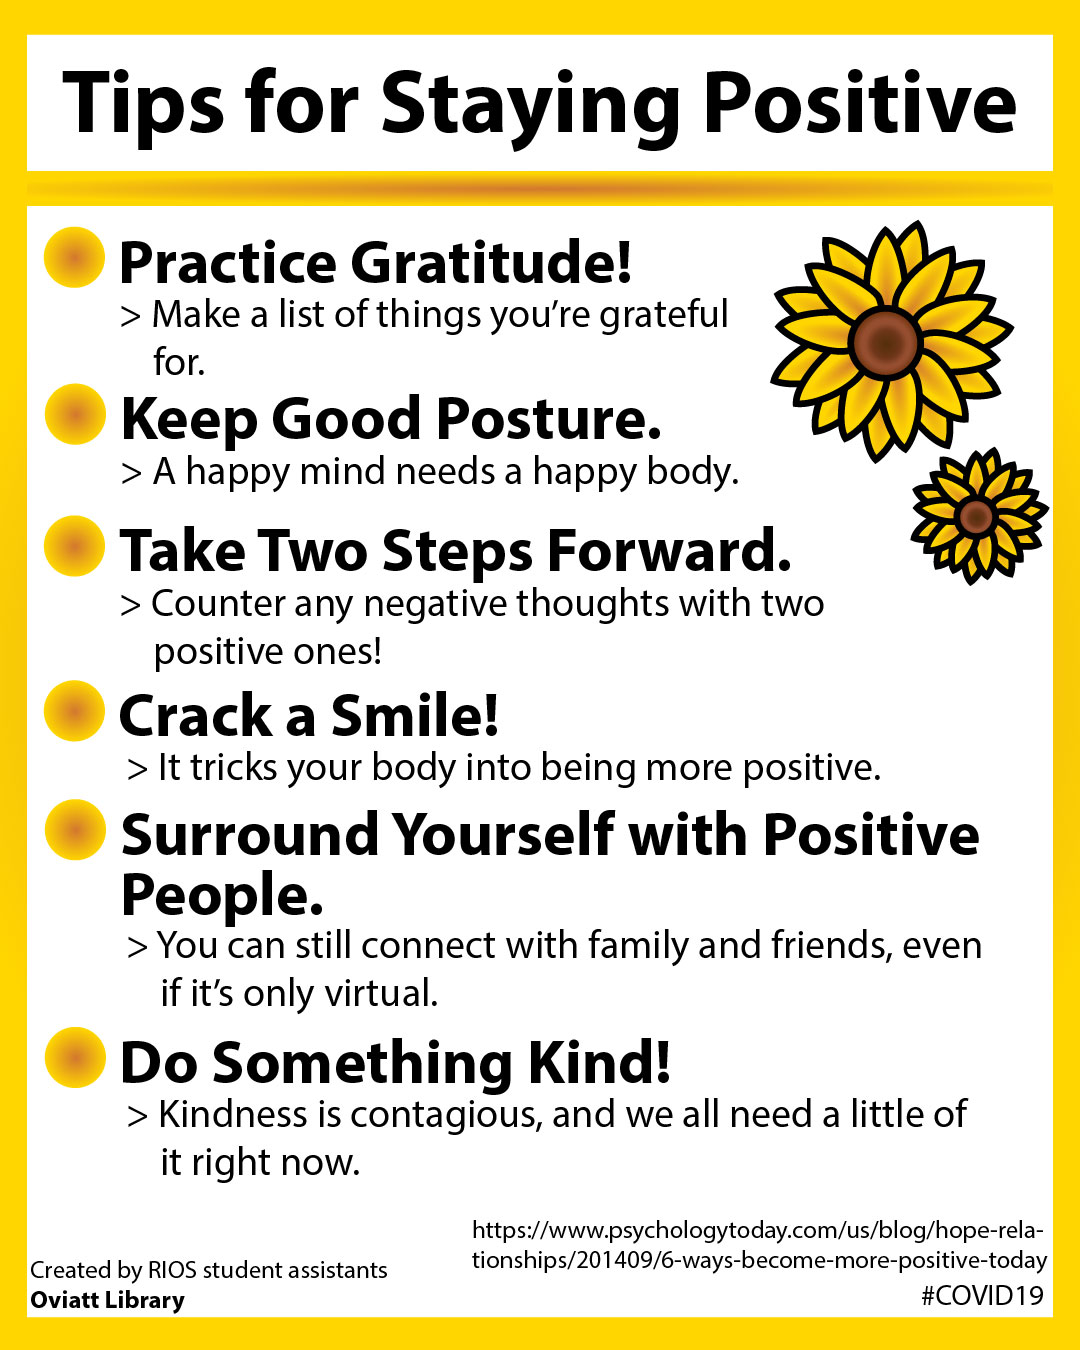 Tips for Staying Positive